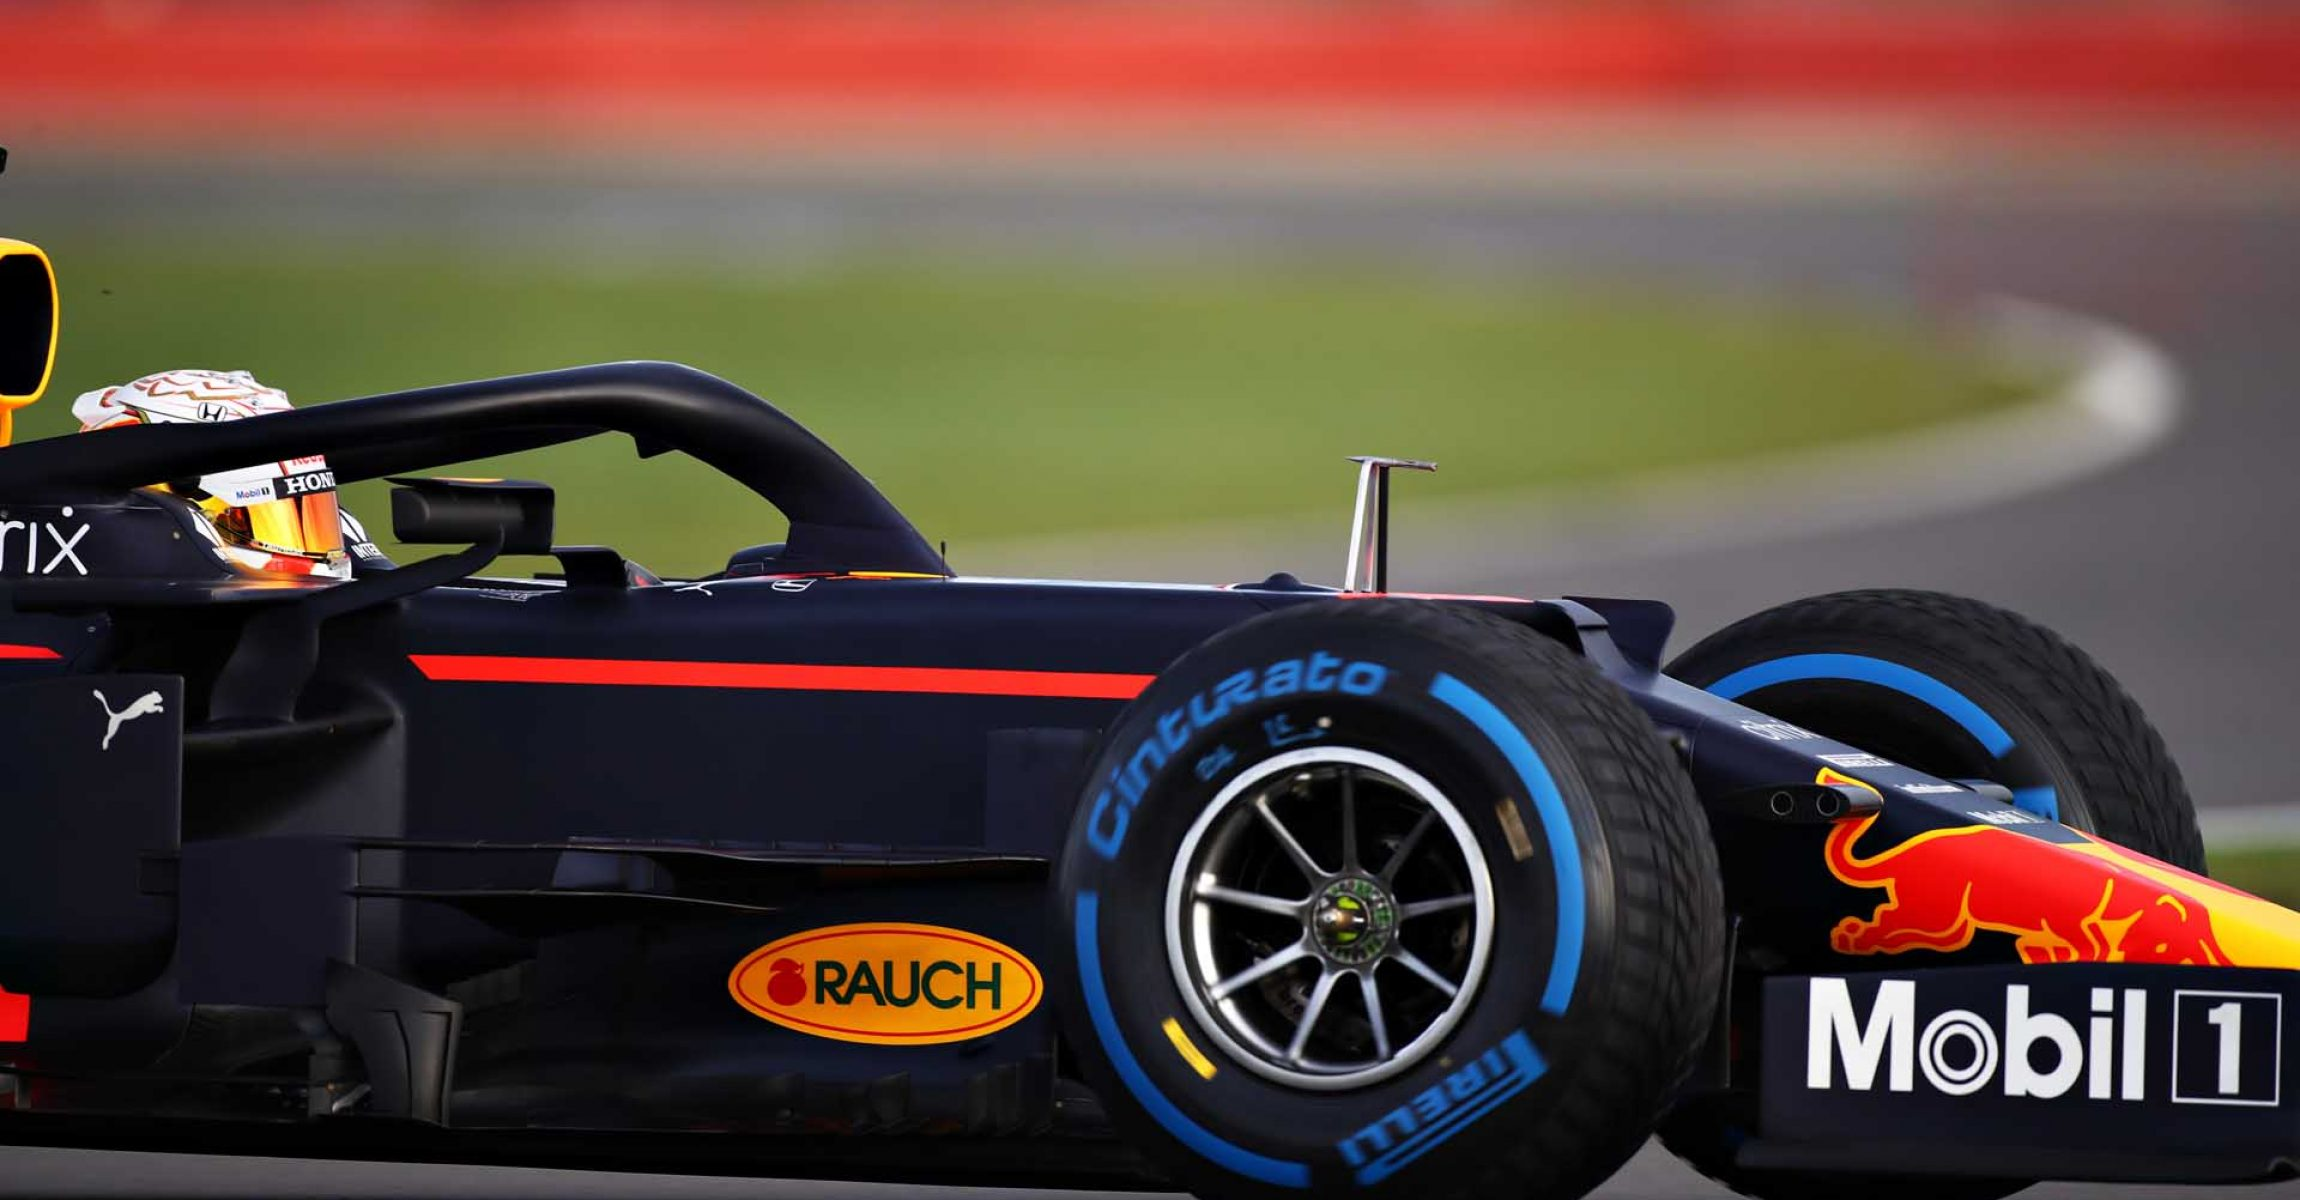 NORTHAMPTON, ENGLAND - FEBRUARY 24: Max Verstappen of Netherlands driving the Red Bull Racing RB15 Honda during the Red Bull Racing Filming Day at Silverstone on February 24, 2021 in Northampton, England. (Photo by Bryn Lennon/Getty Images for Red Bull Racing)